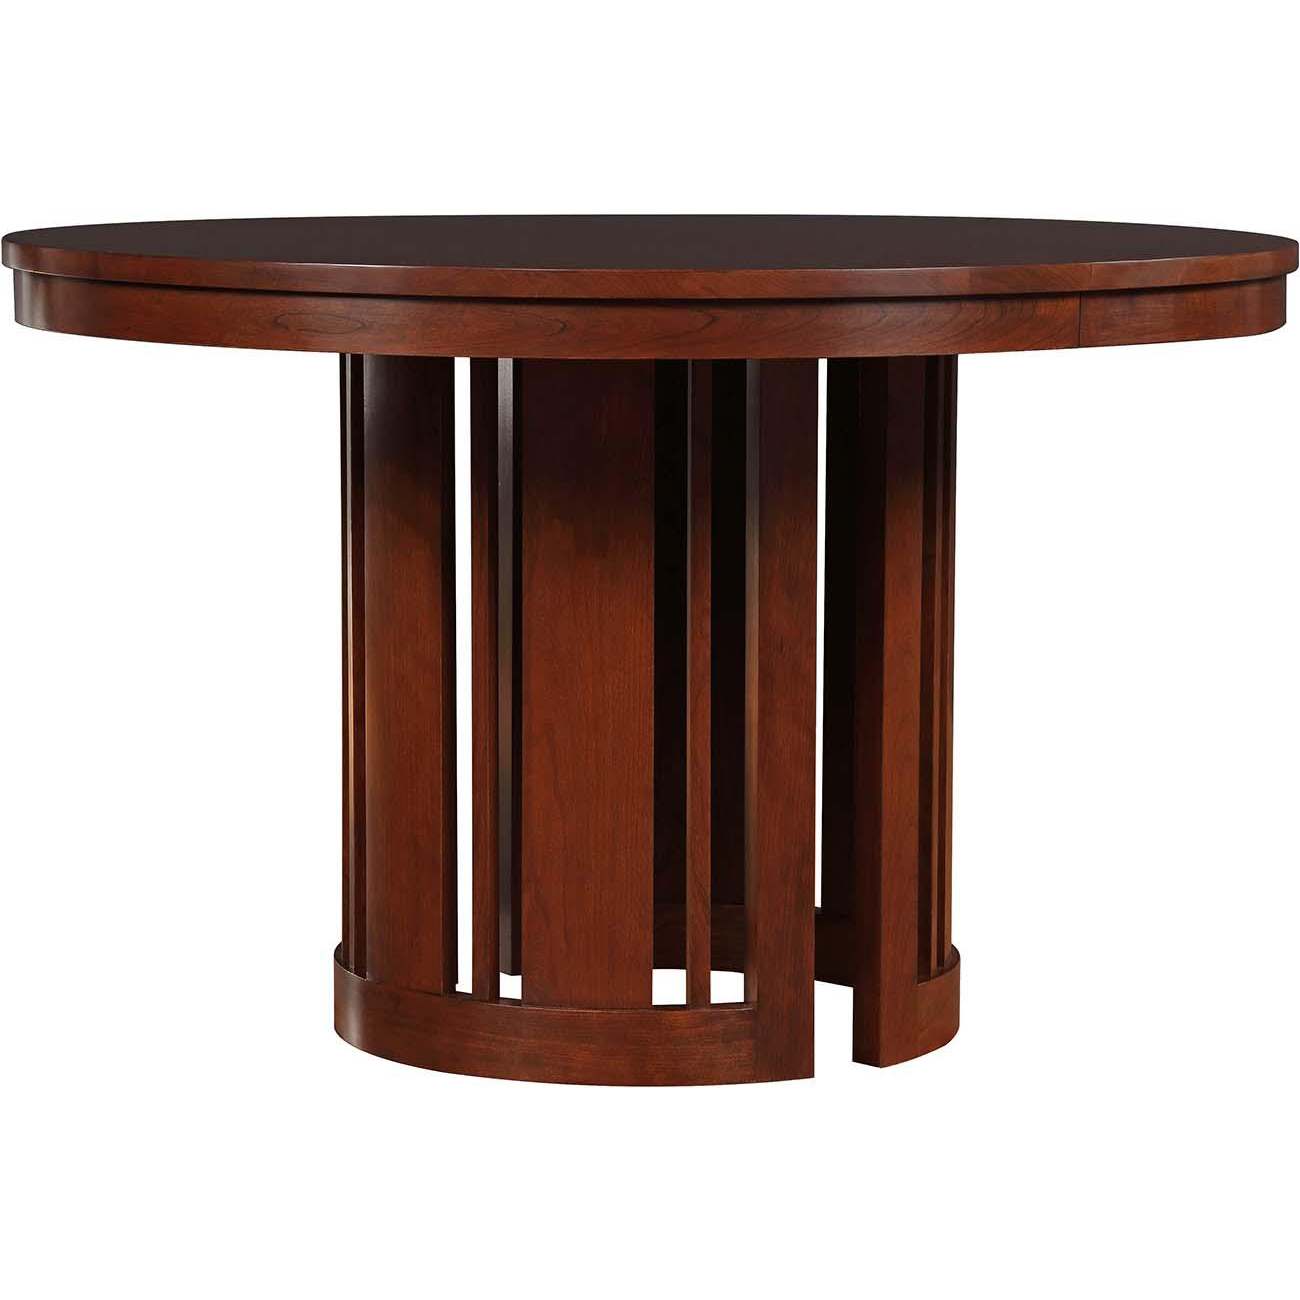 Park Slope Round Dining Table